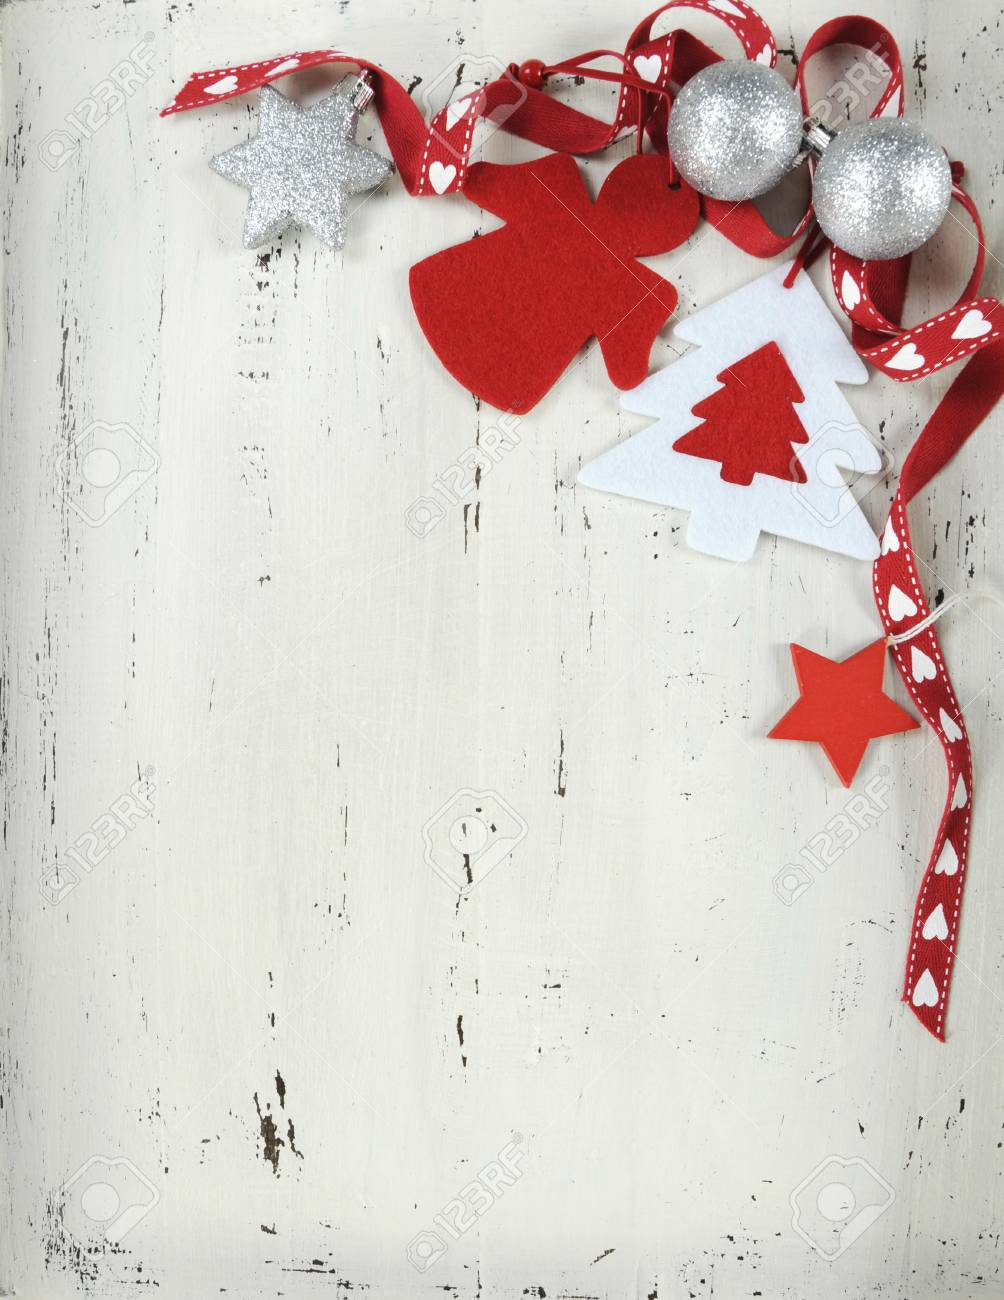 Christmas Holiday Background.Festive Christmas Holiday Background With Red And White Theme